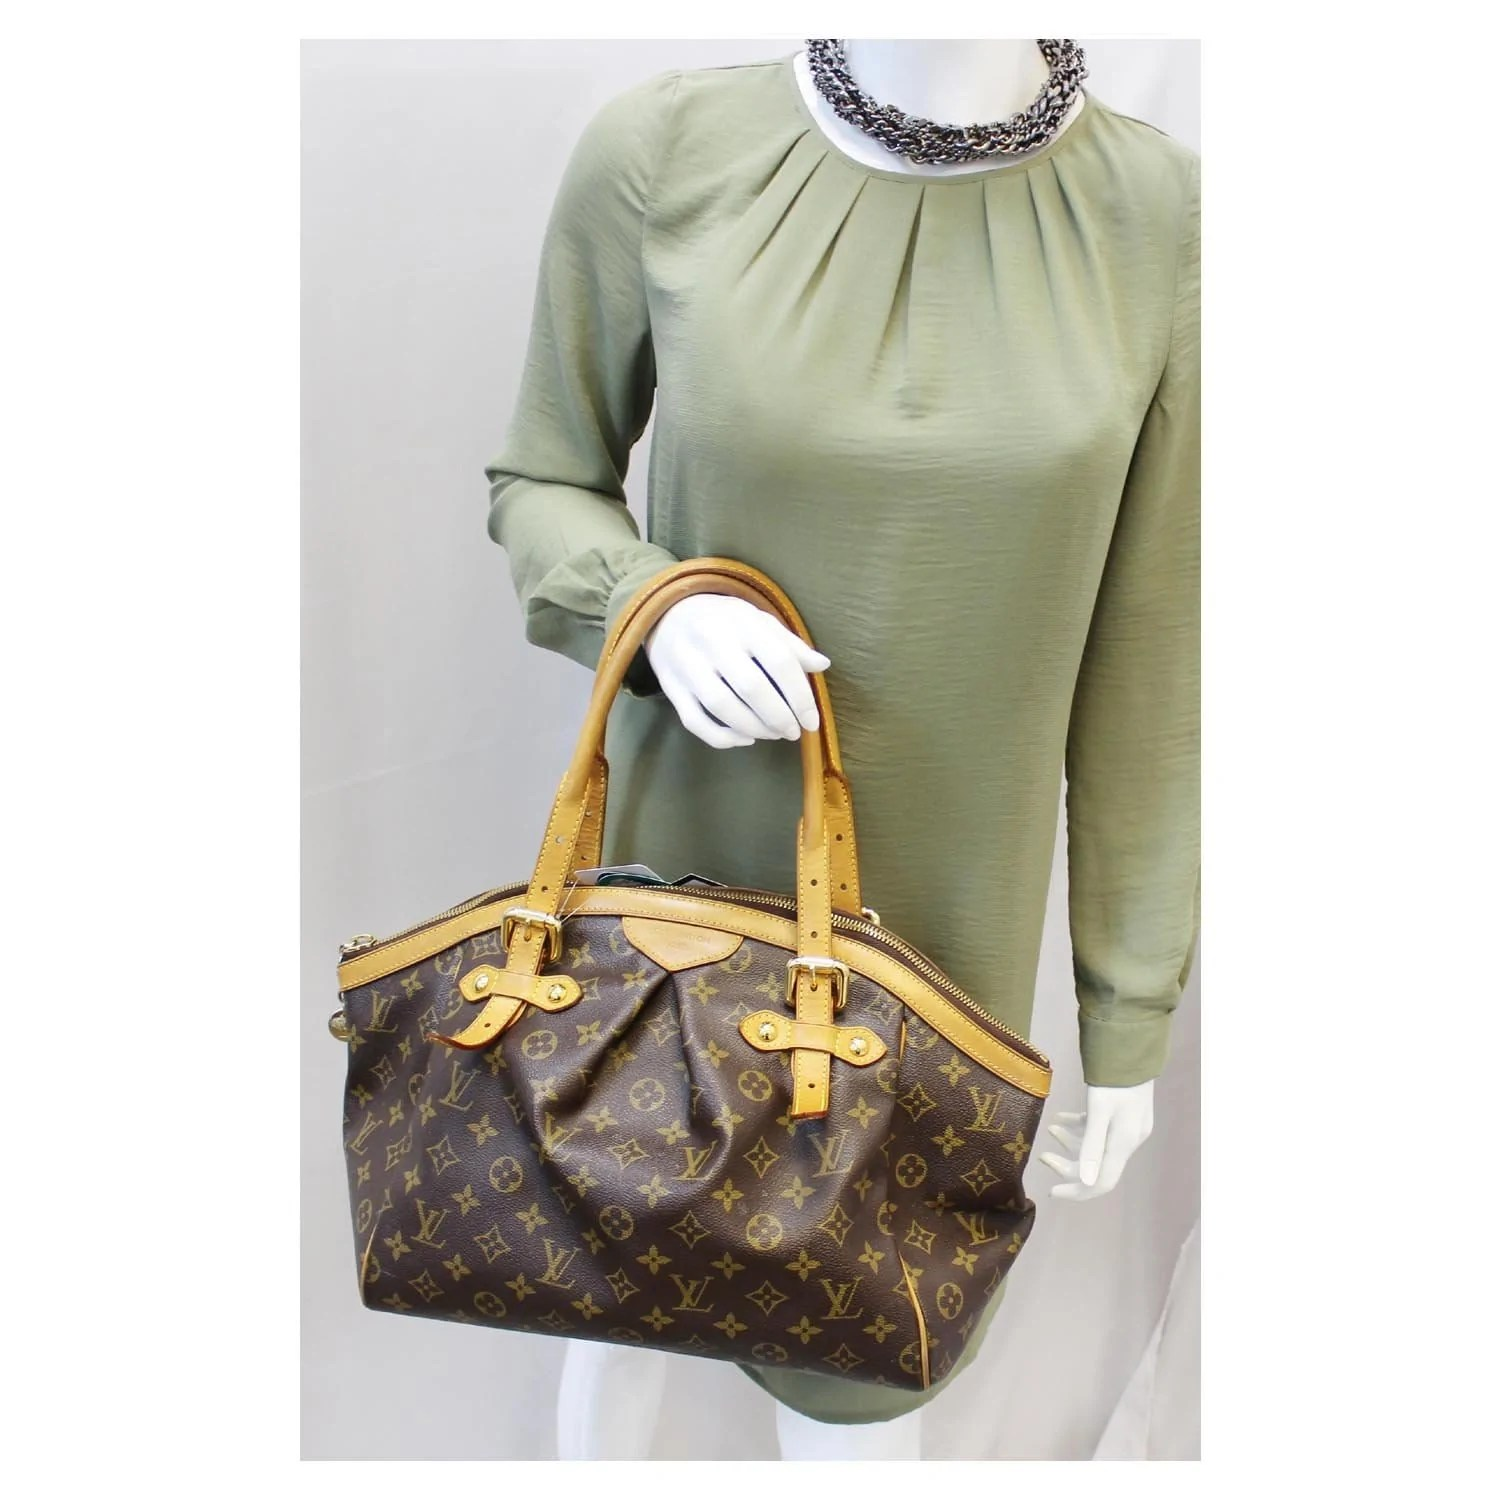 Tivoli Gm Louis Vuitton Tivoli Gm Monogram Canvas Brown Shoulder Bag Us